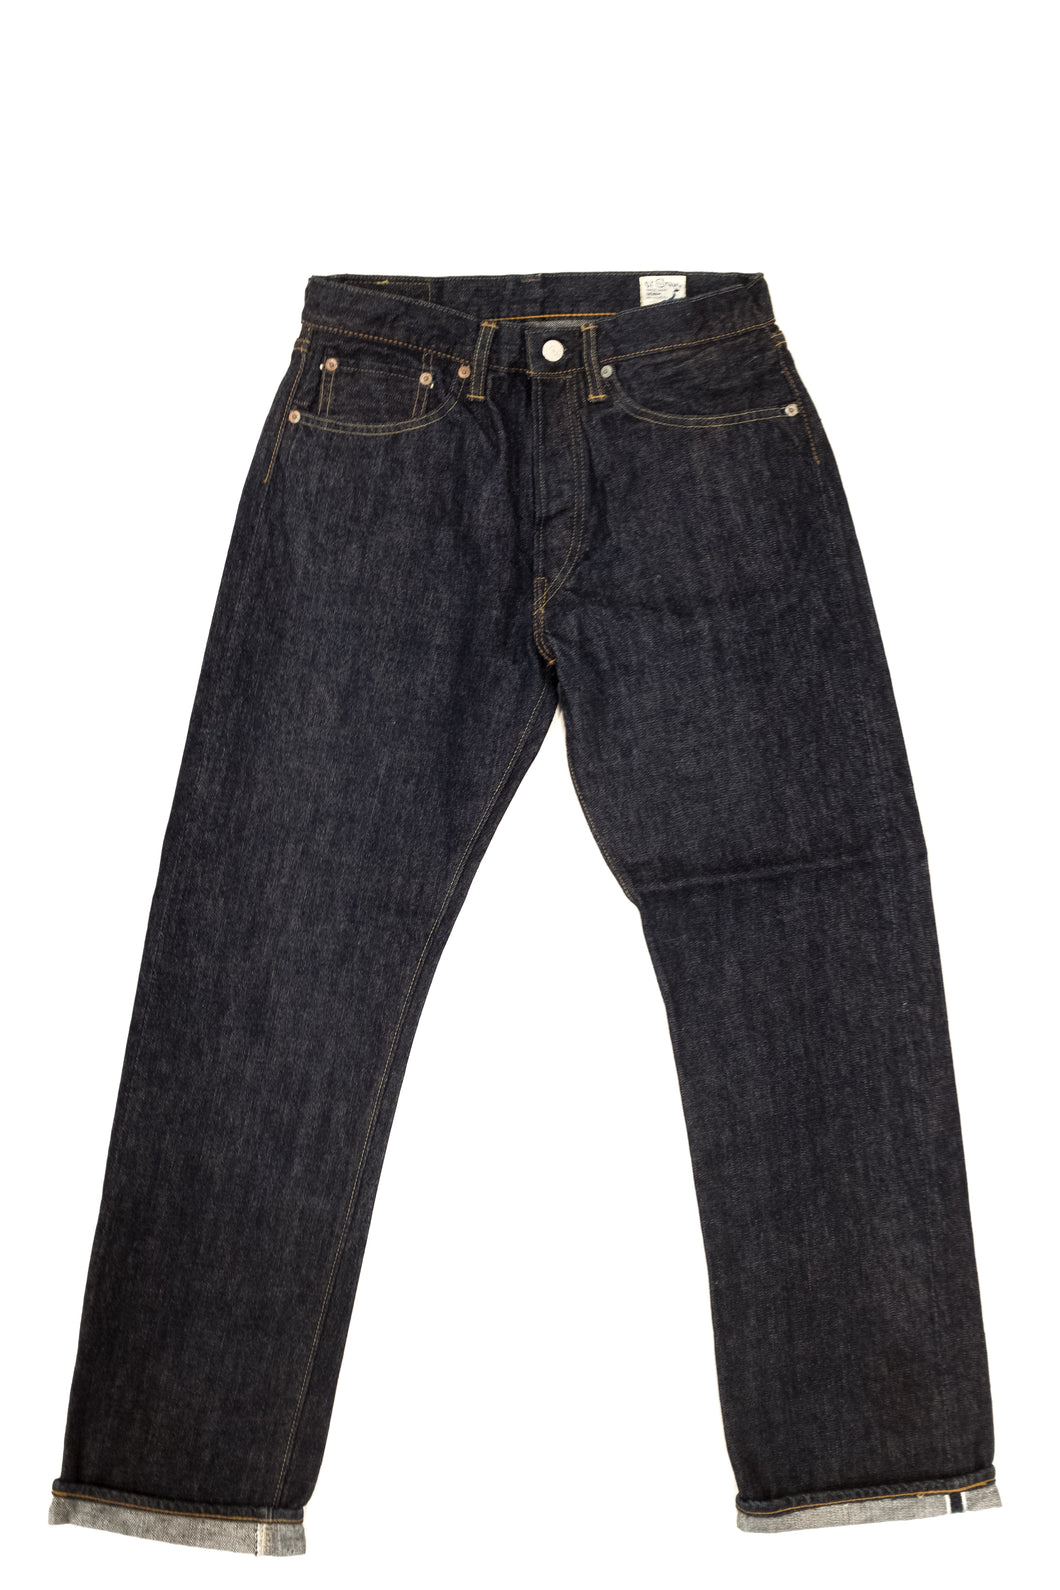 orSlow - 105 Standard Straight Selvedge - One Wash